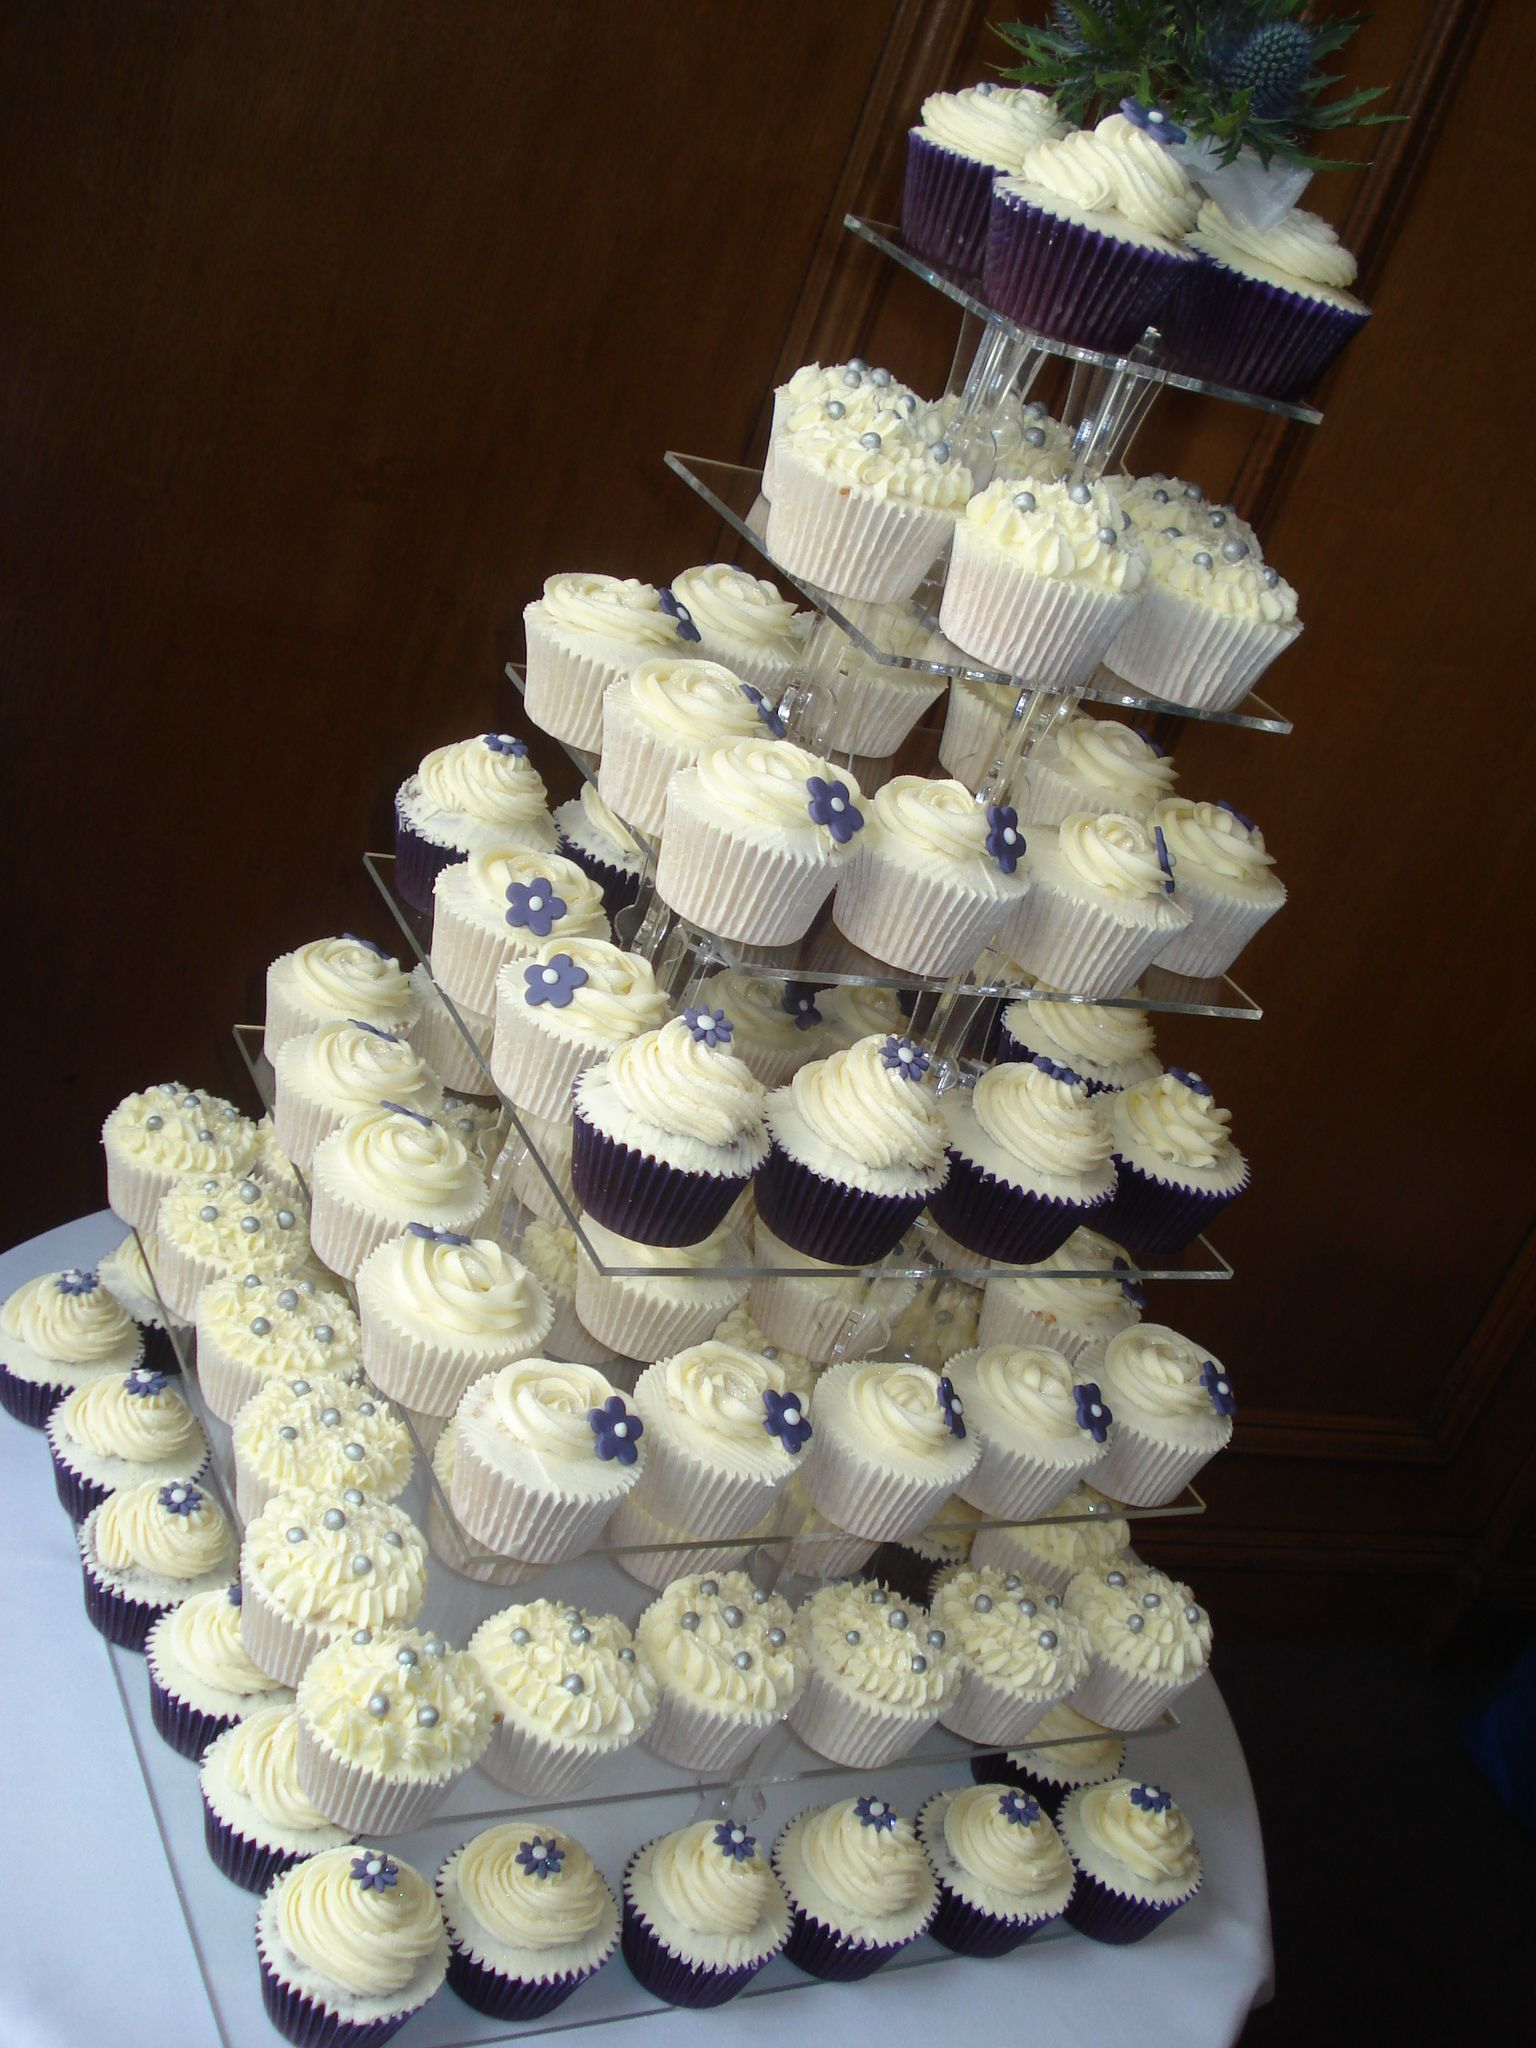 Party Cupcakes Scottish Wedding Cupcakes Lizzie S Tea